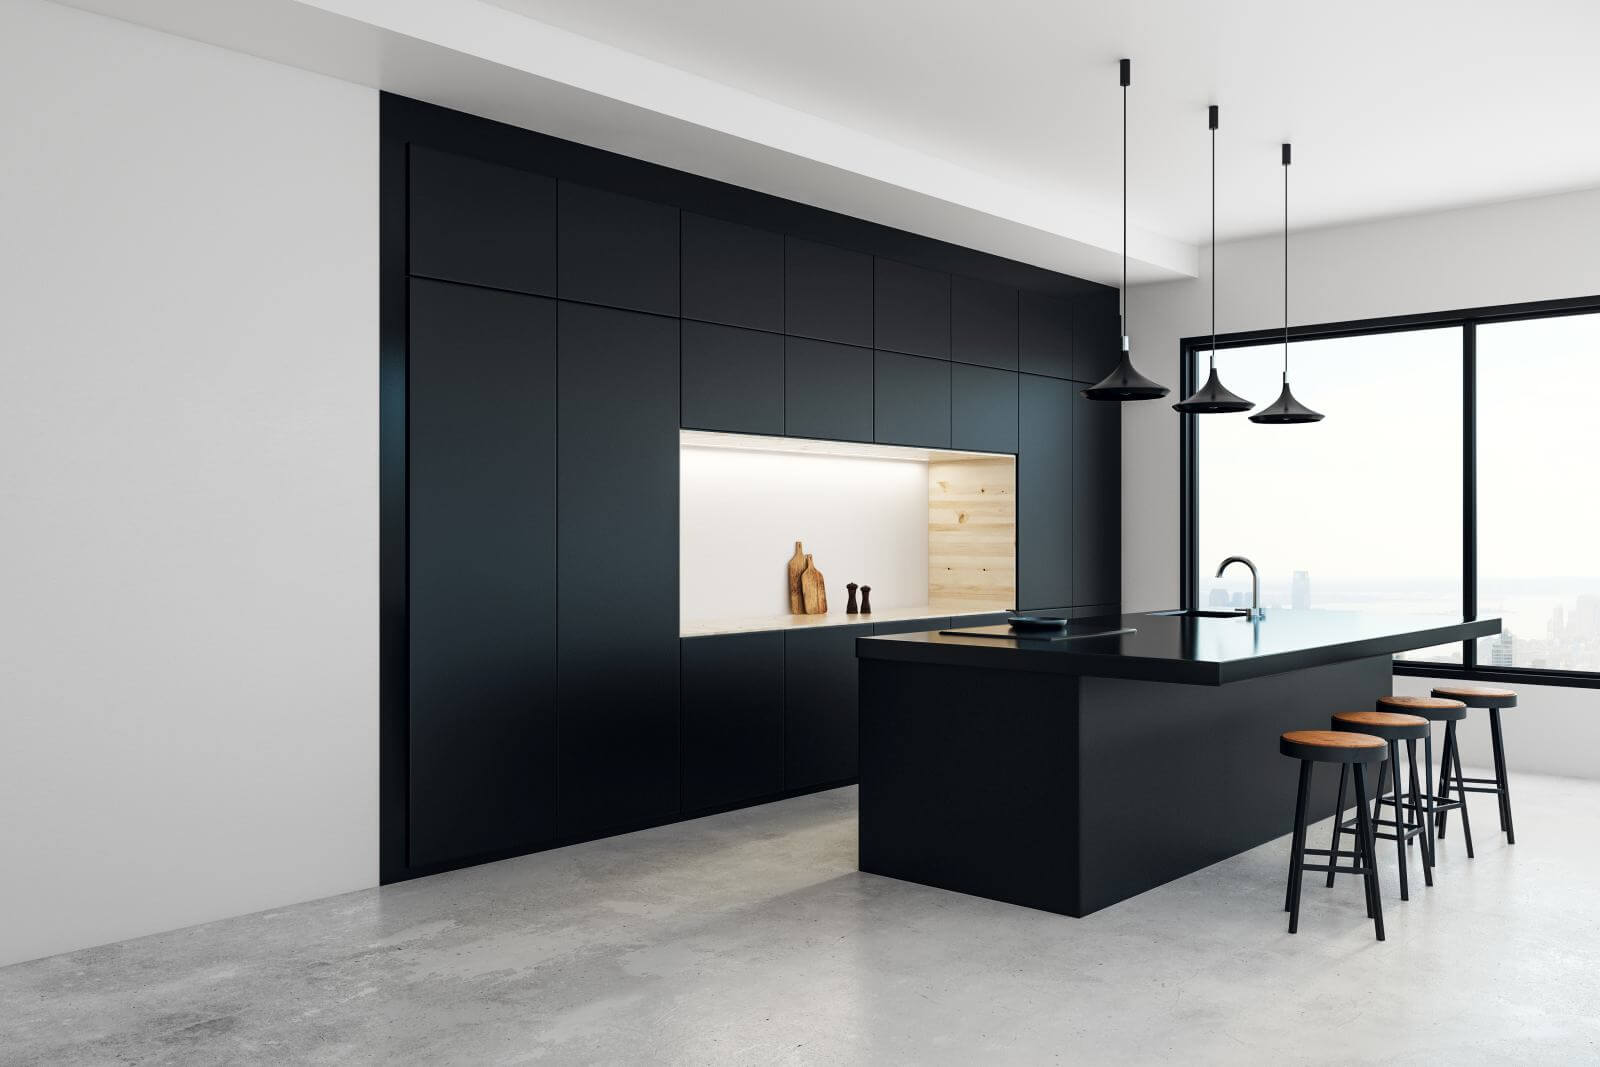 Modern kitchen studio interior with panoramic New York city view and daylight. 3D Rendering